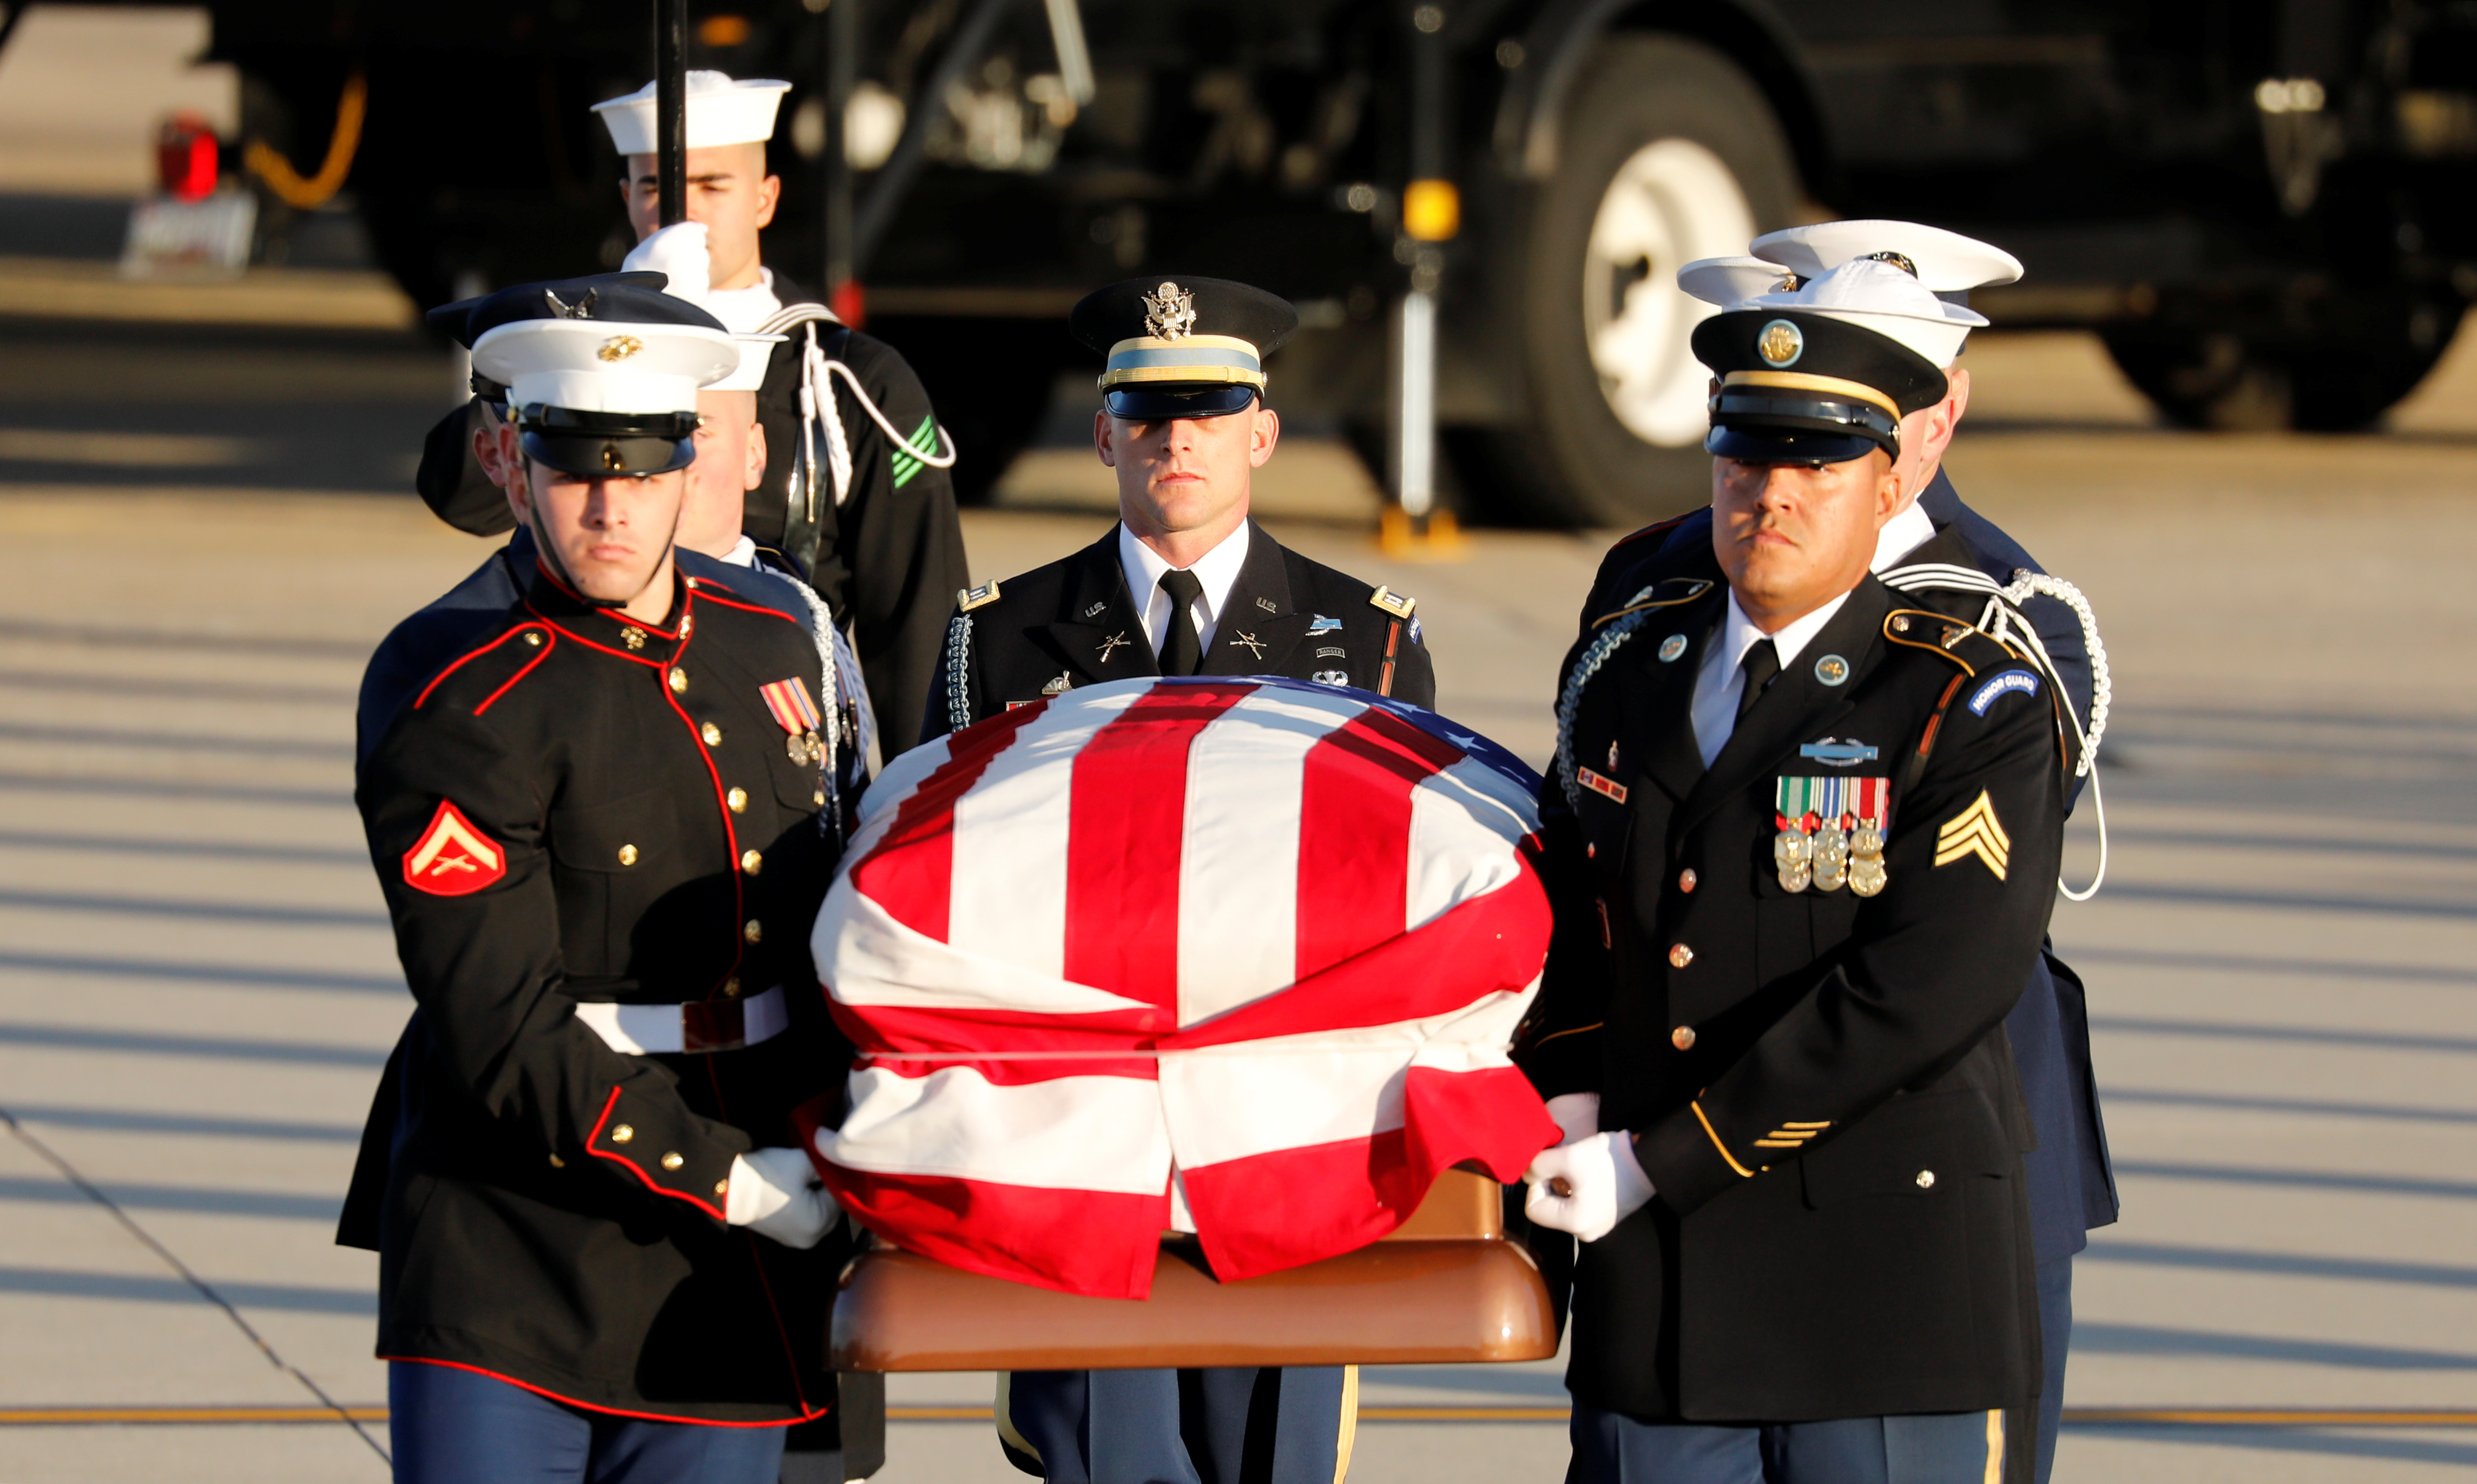 A military honor guard carries the casket of former U.S. President George H.W. Bush as it arrives at Joint Base Andrews in Maryland, U.S., December 3, 2018. (REUTERS/Yuri Gripas)